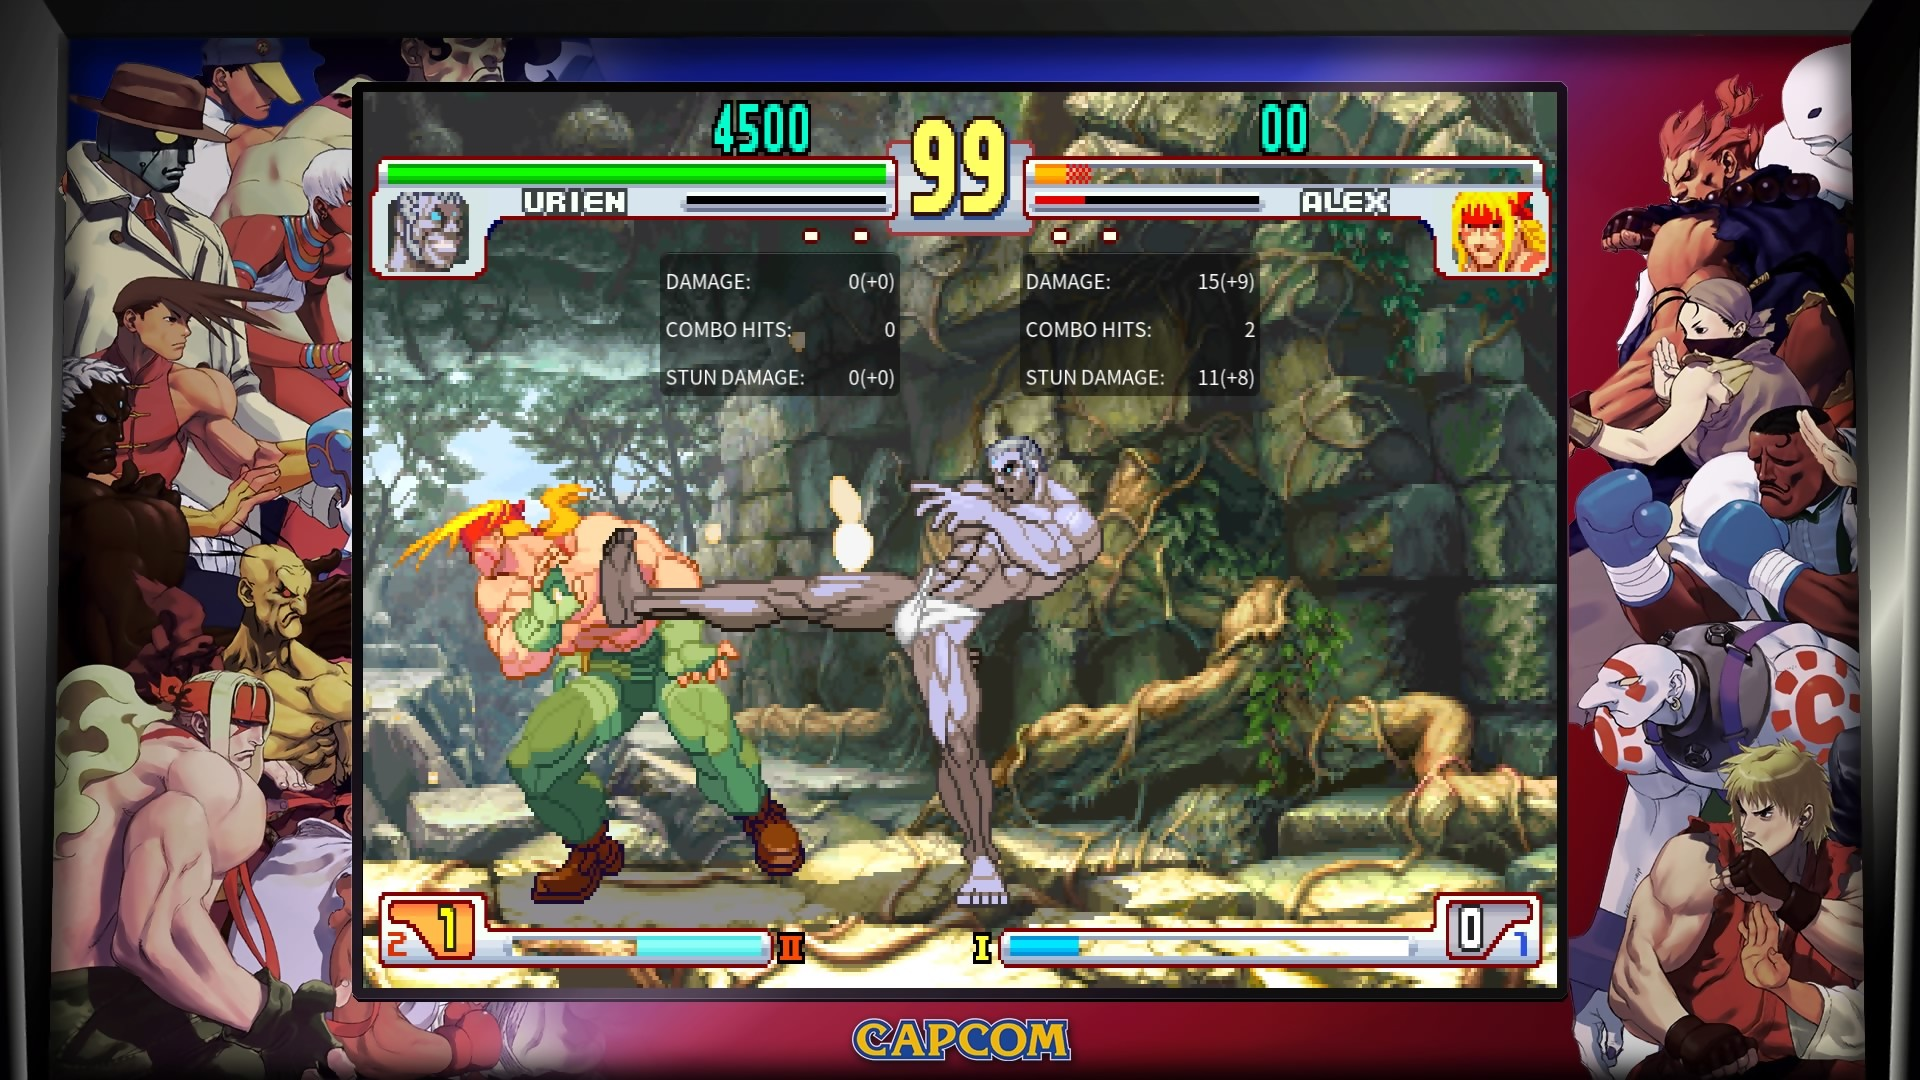 street-fighter-30th-anniversary-compilation-entrainement-01-capcom